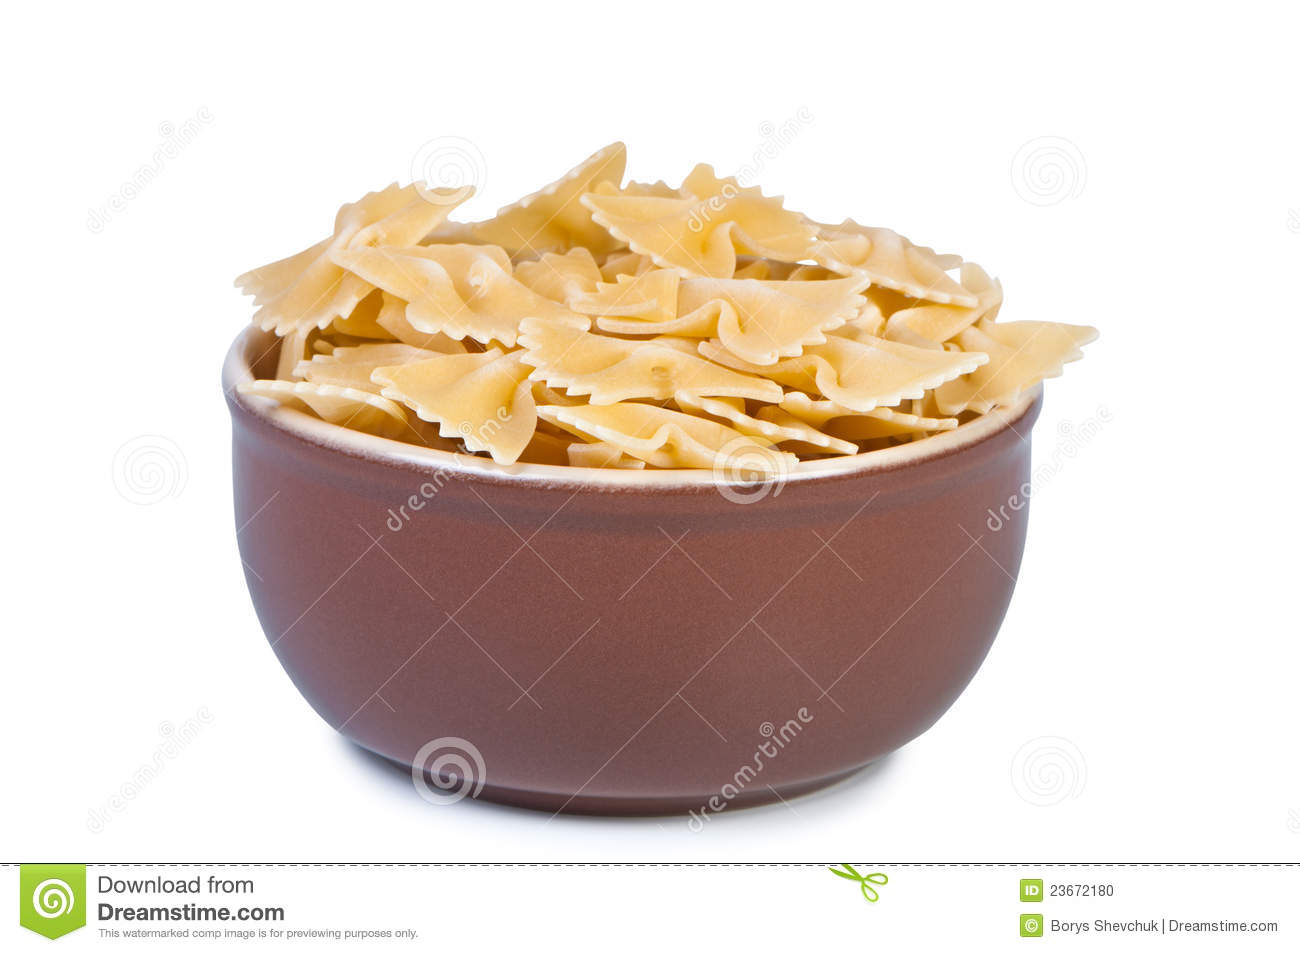 Bowl with raw pasta on white background.